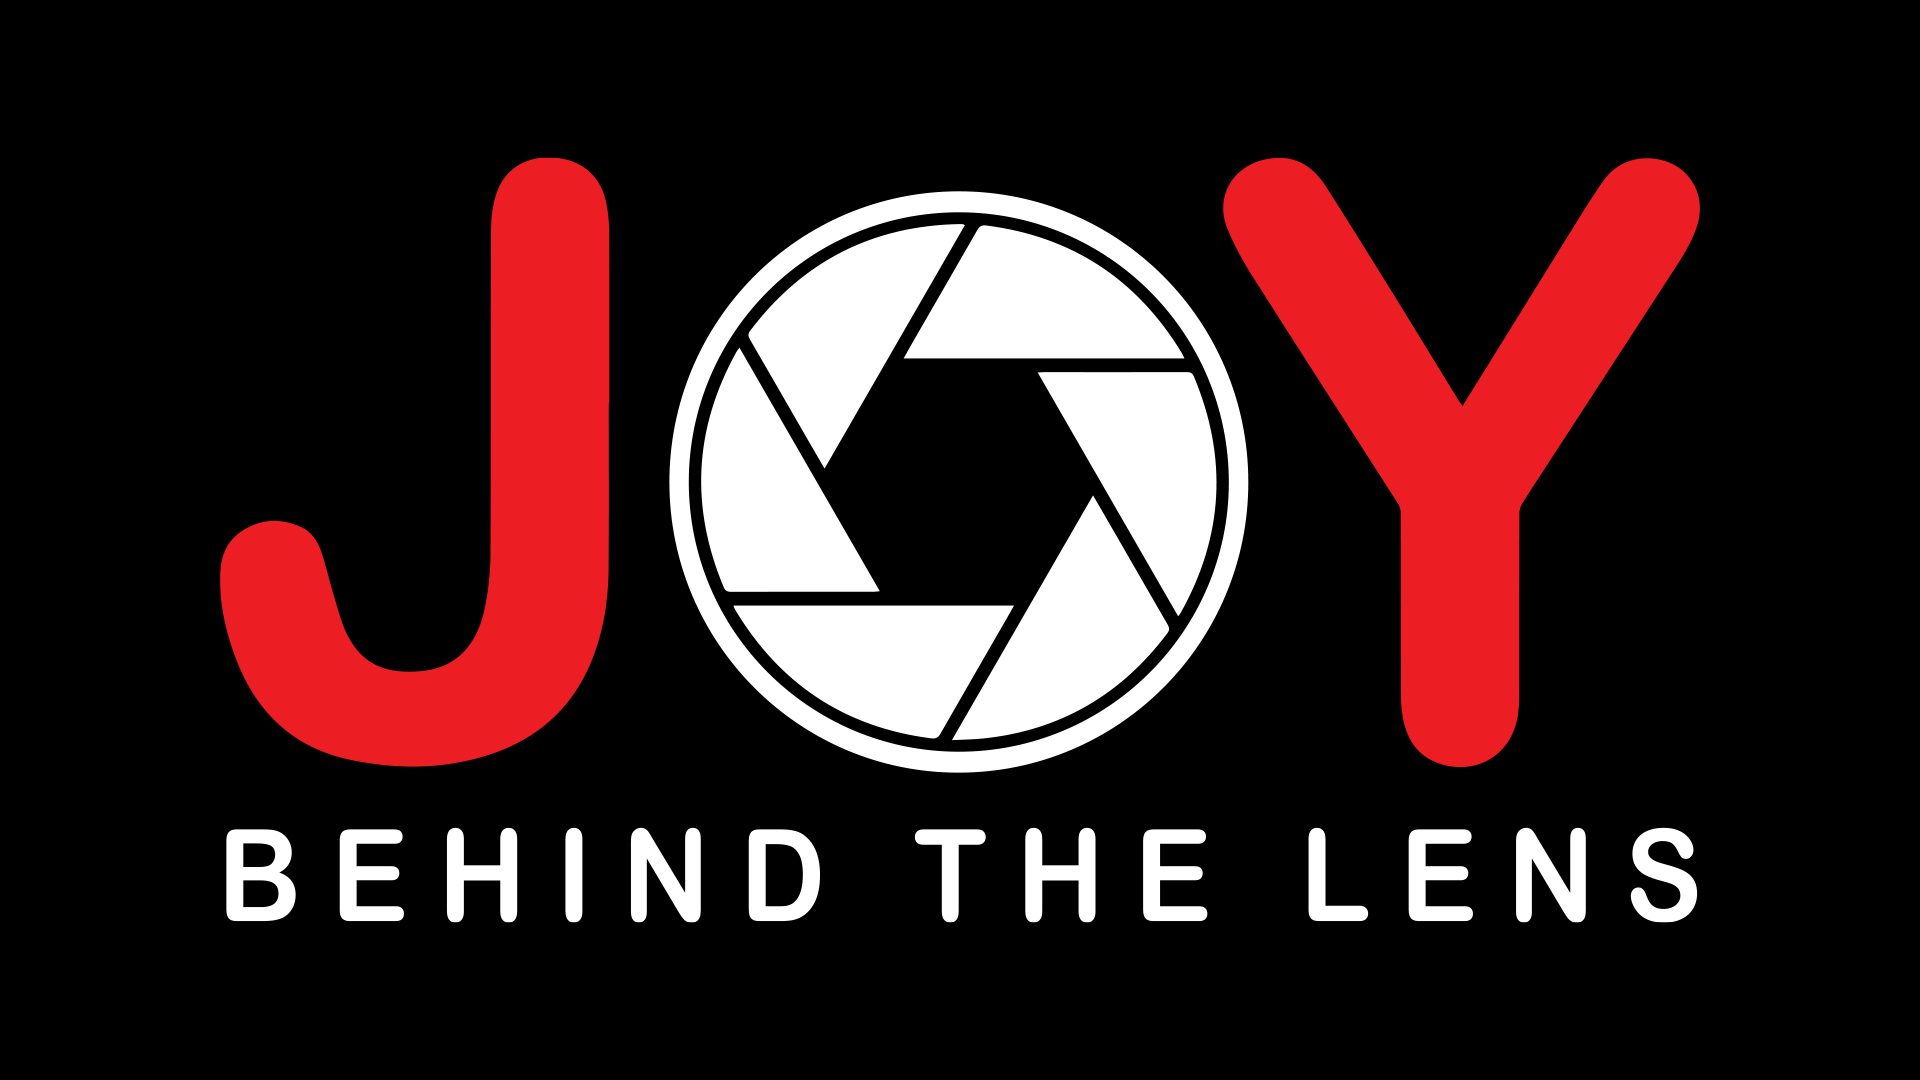 Joy Behind the Lens